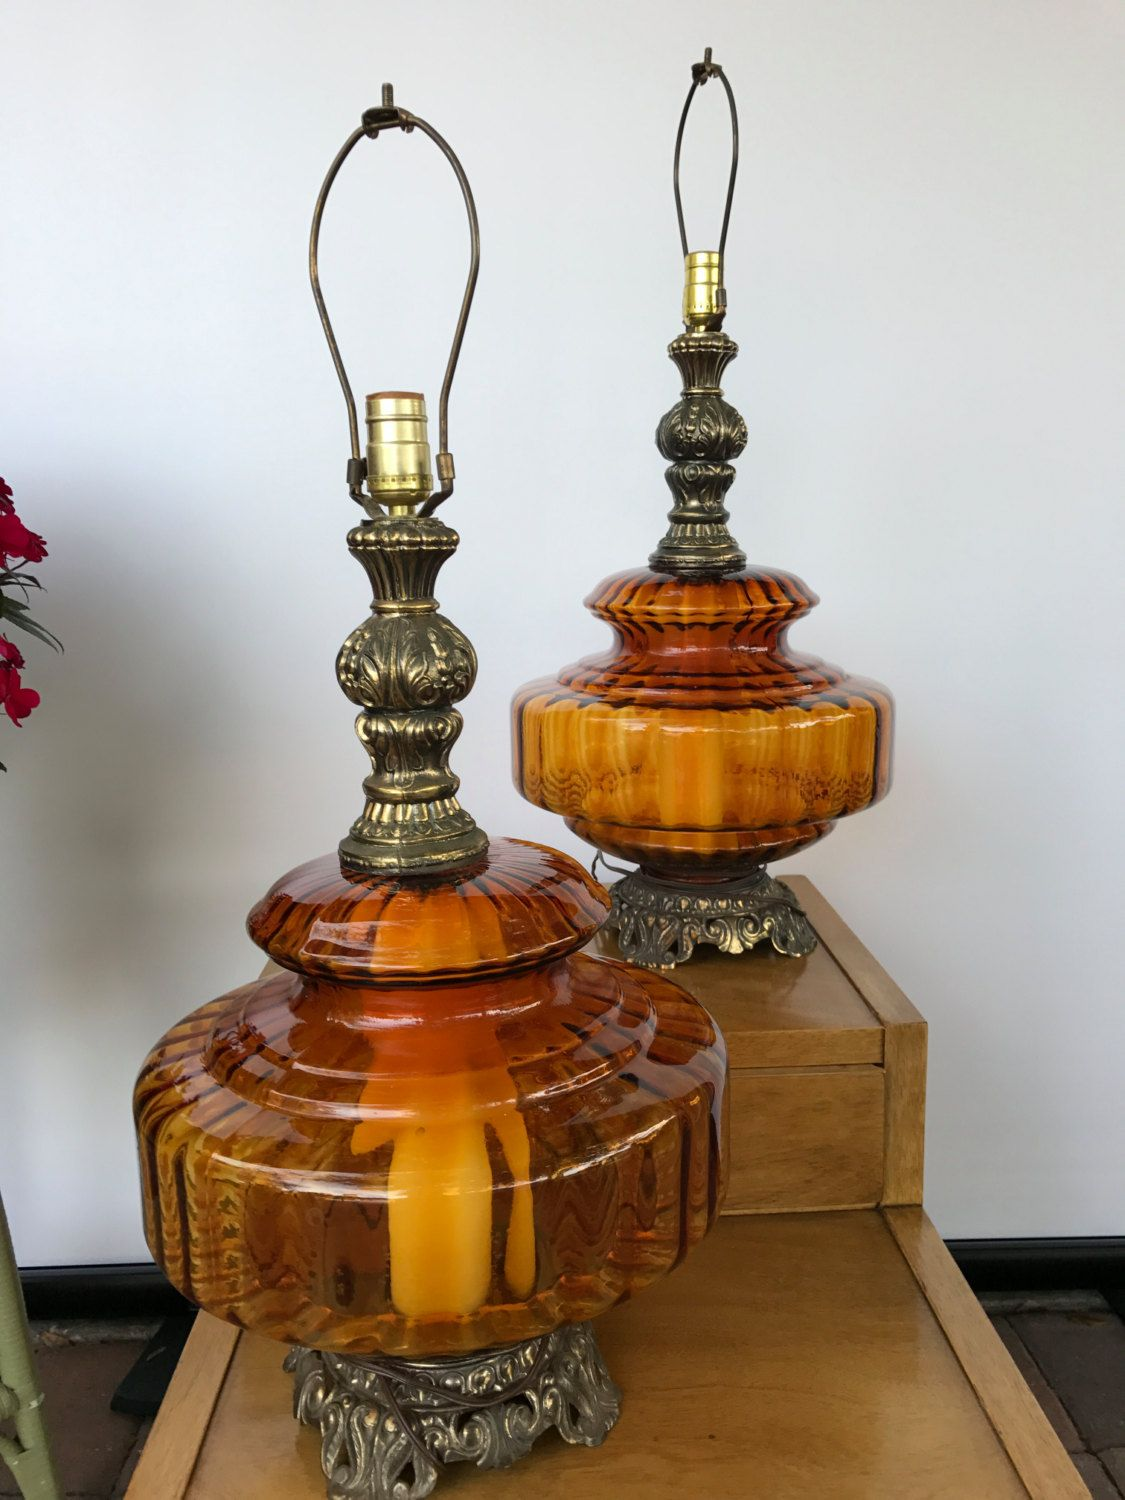 Amber Gl Hollywood Regency Lamps By Bazemorevault On Etsy